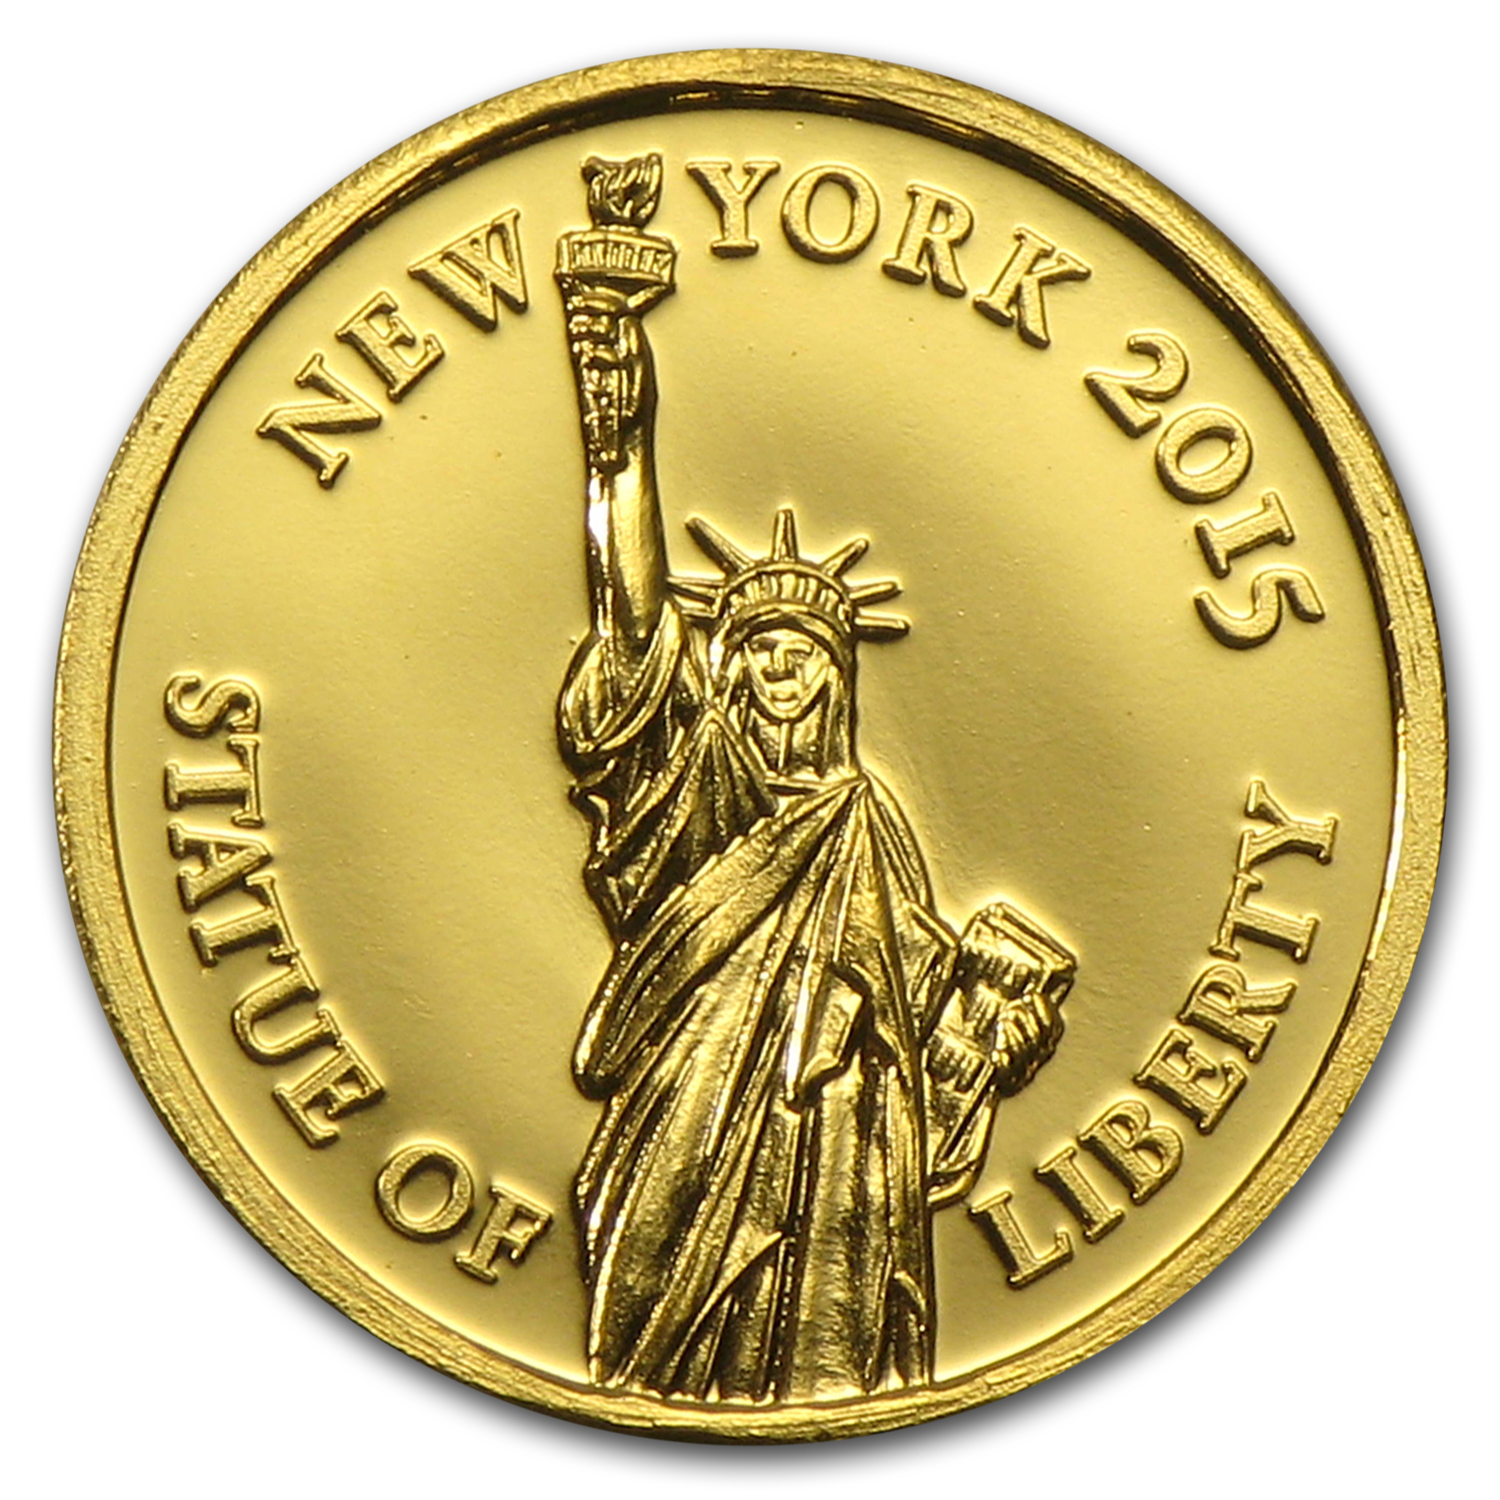 2015 Burundi Gold 100 Francs Statue of Liberty